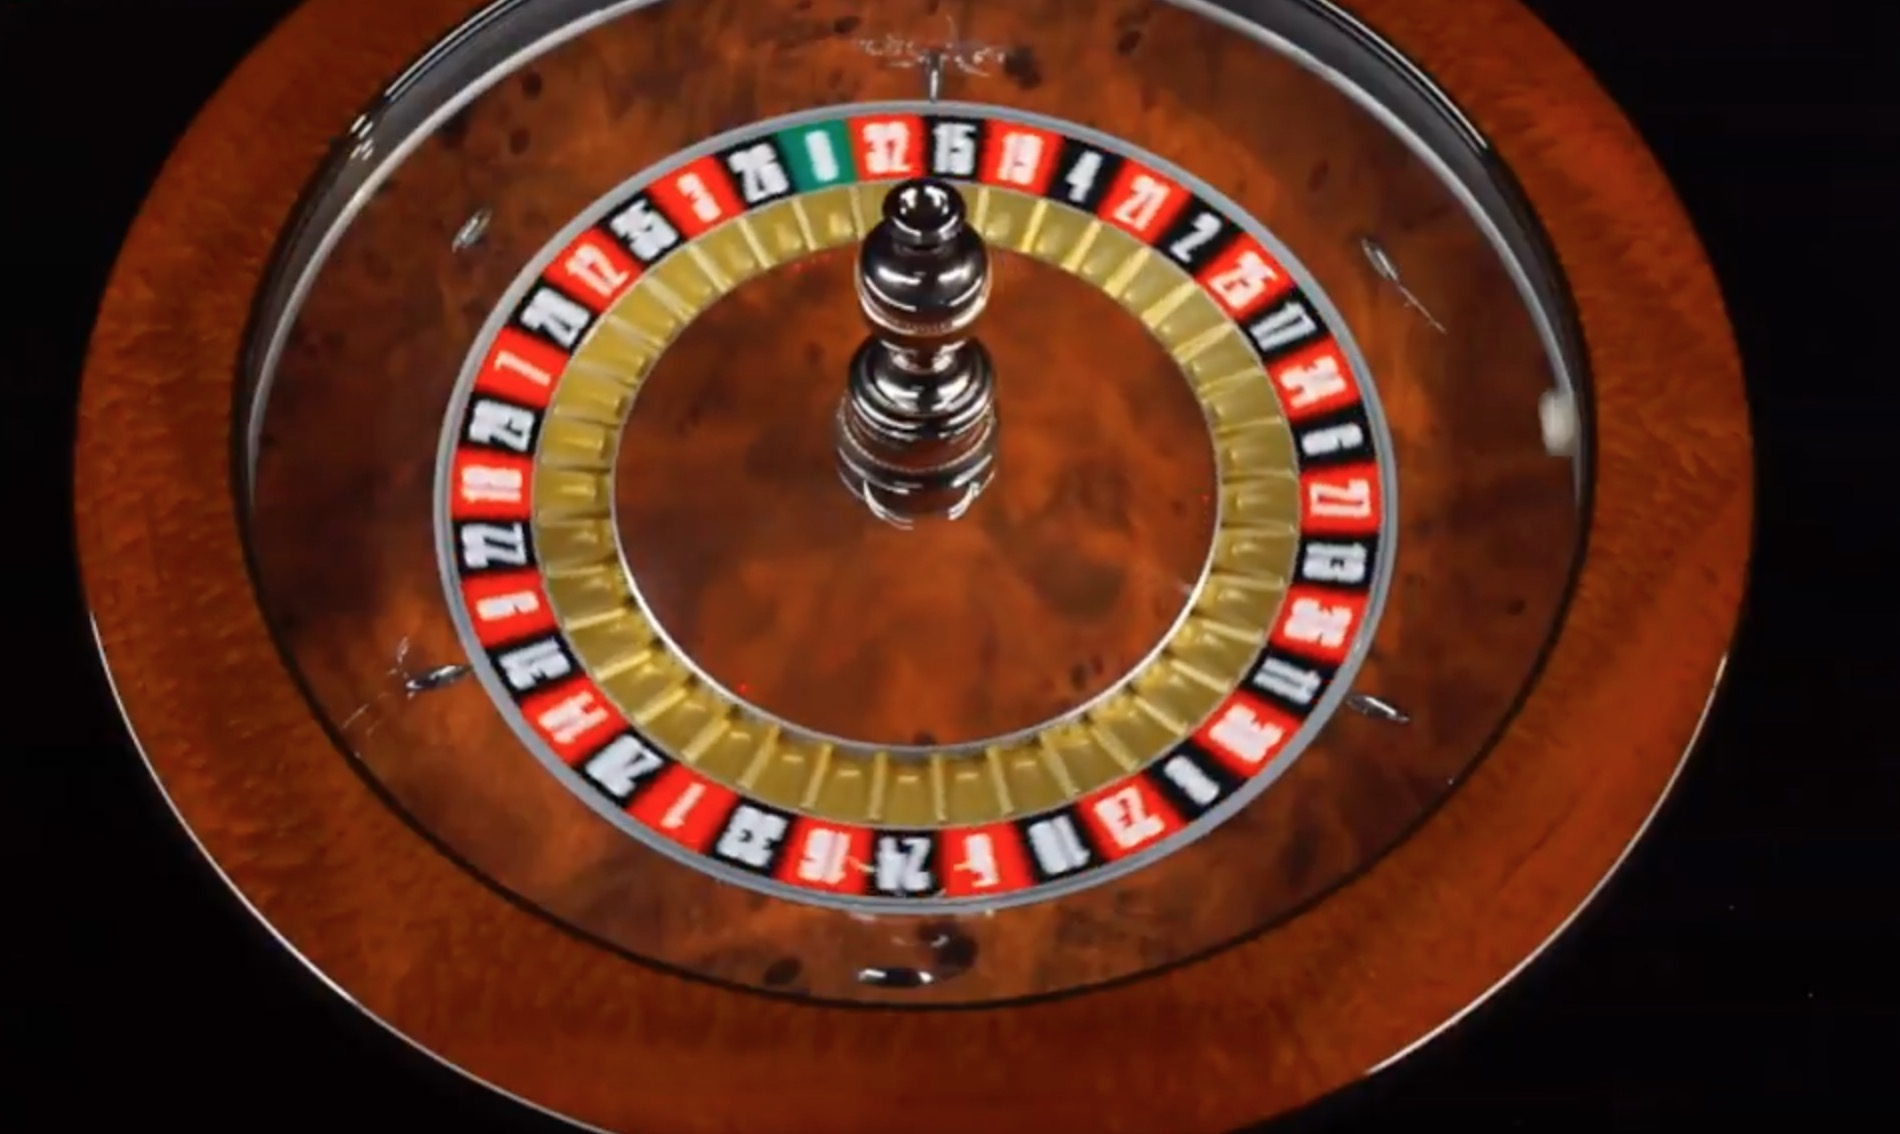 Gambling gets another look during Florida's legislative session